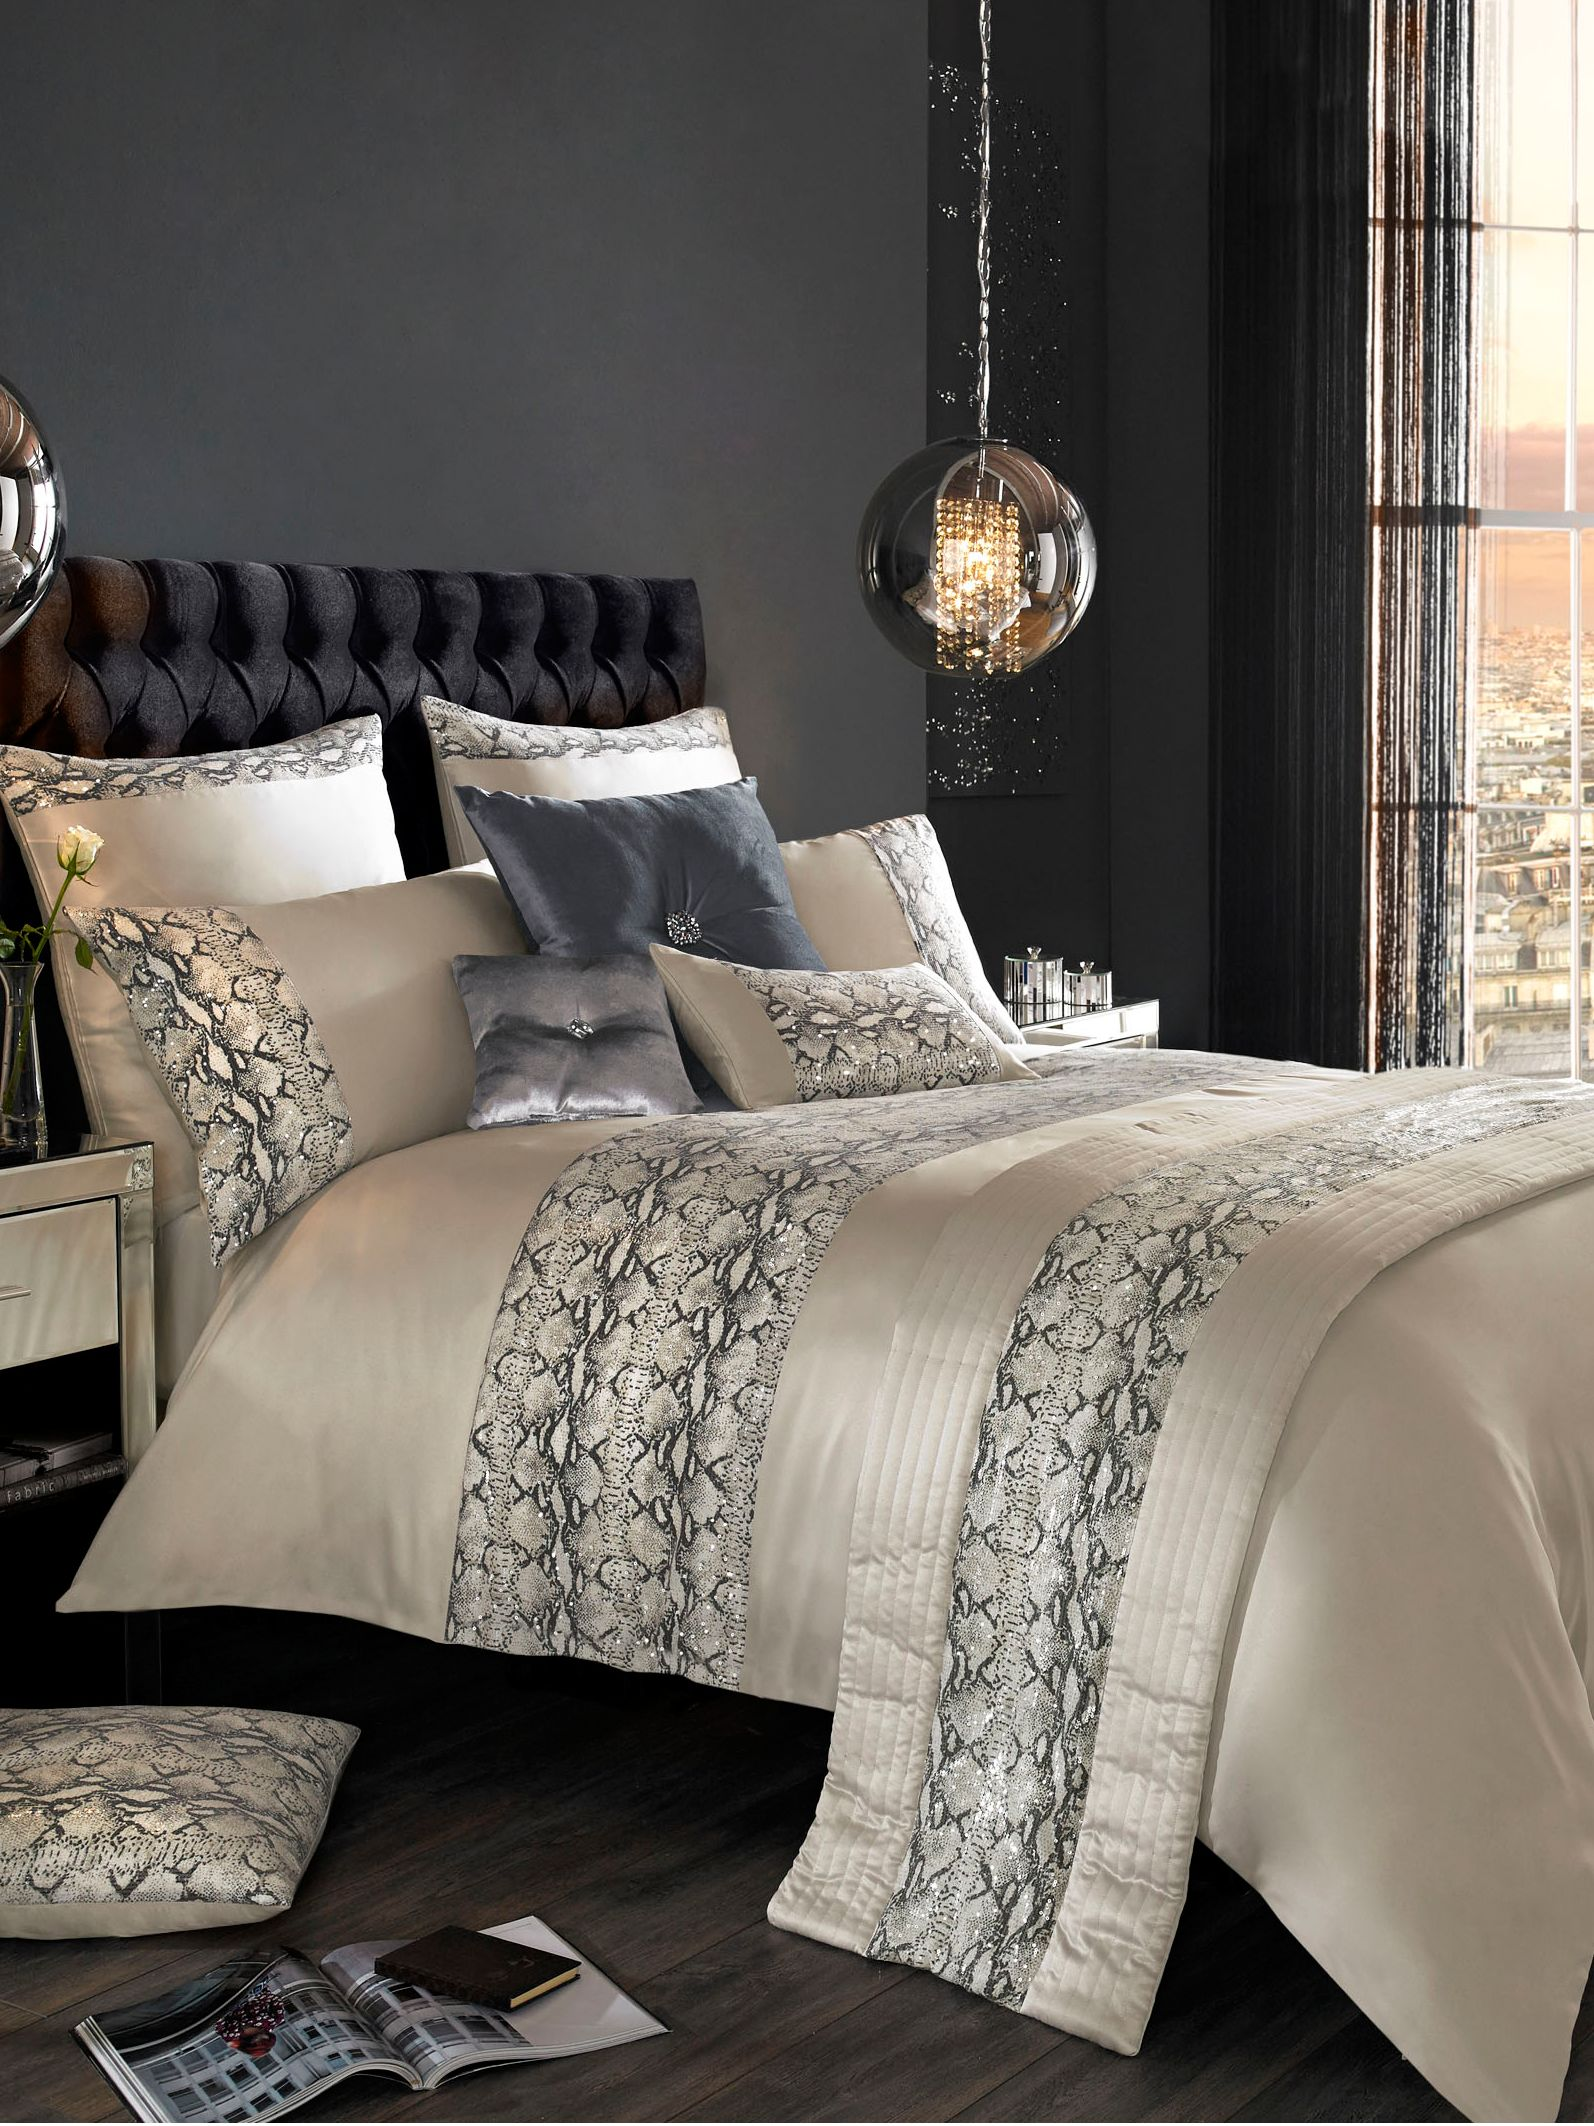 Adira bed linen in grey